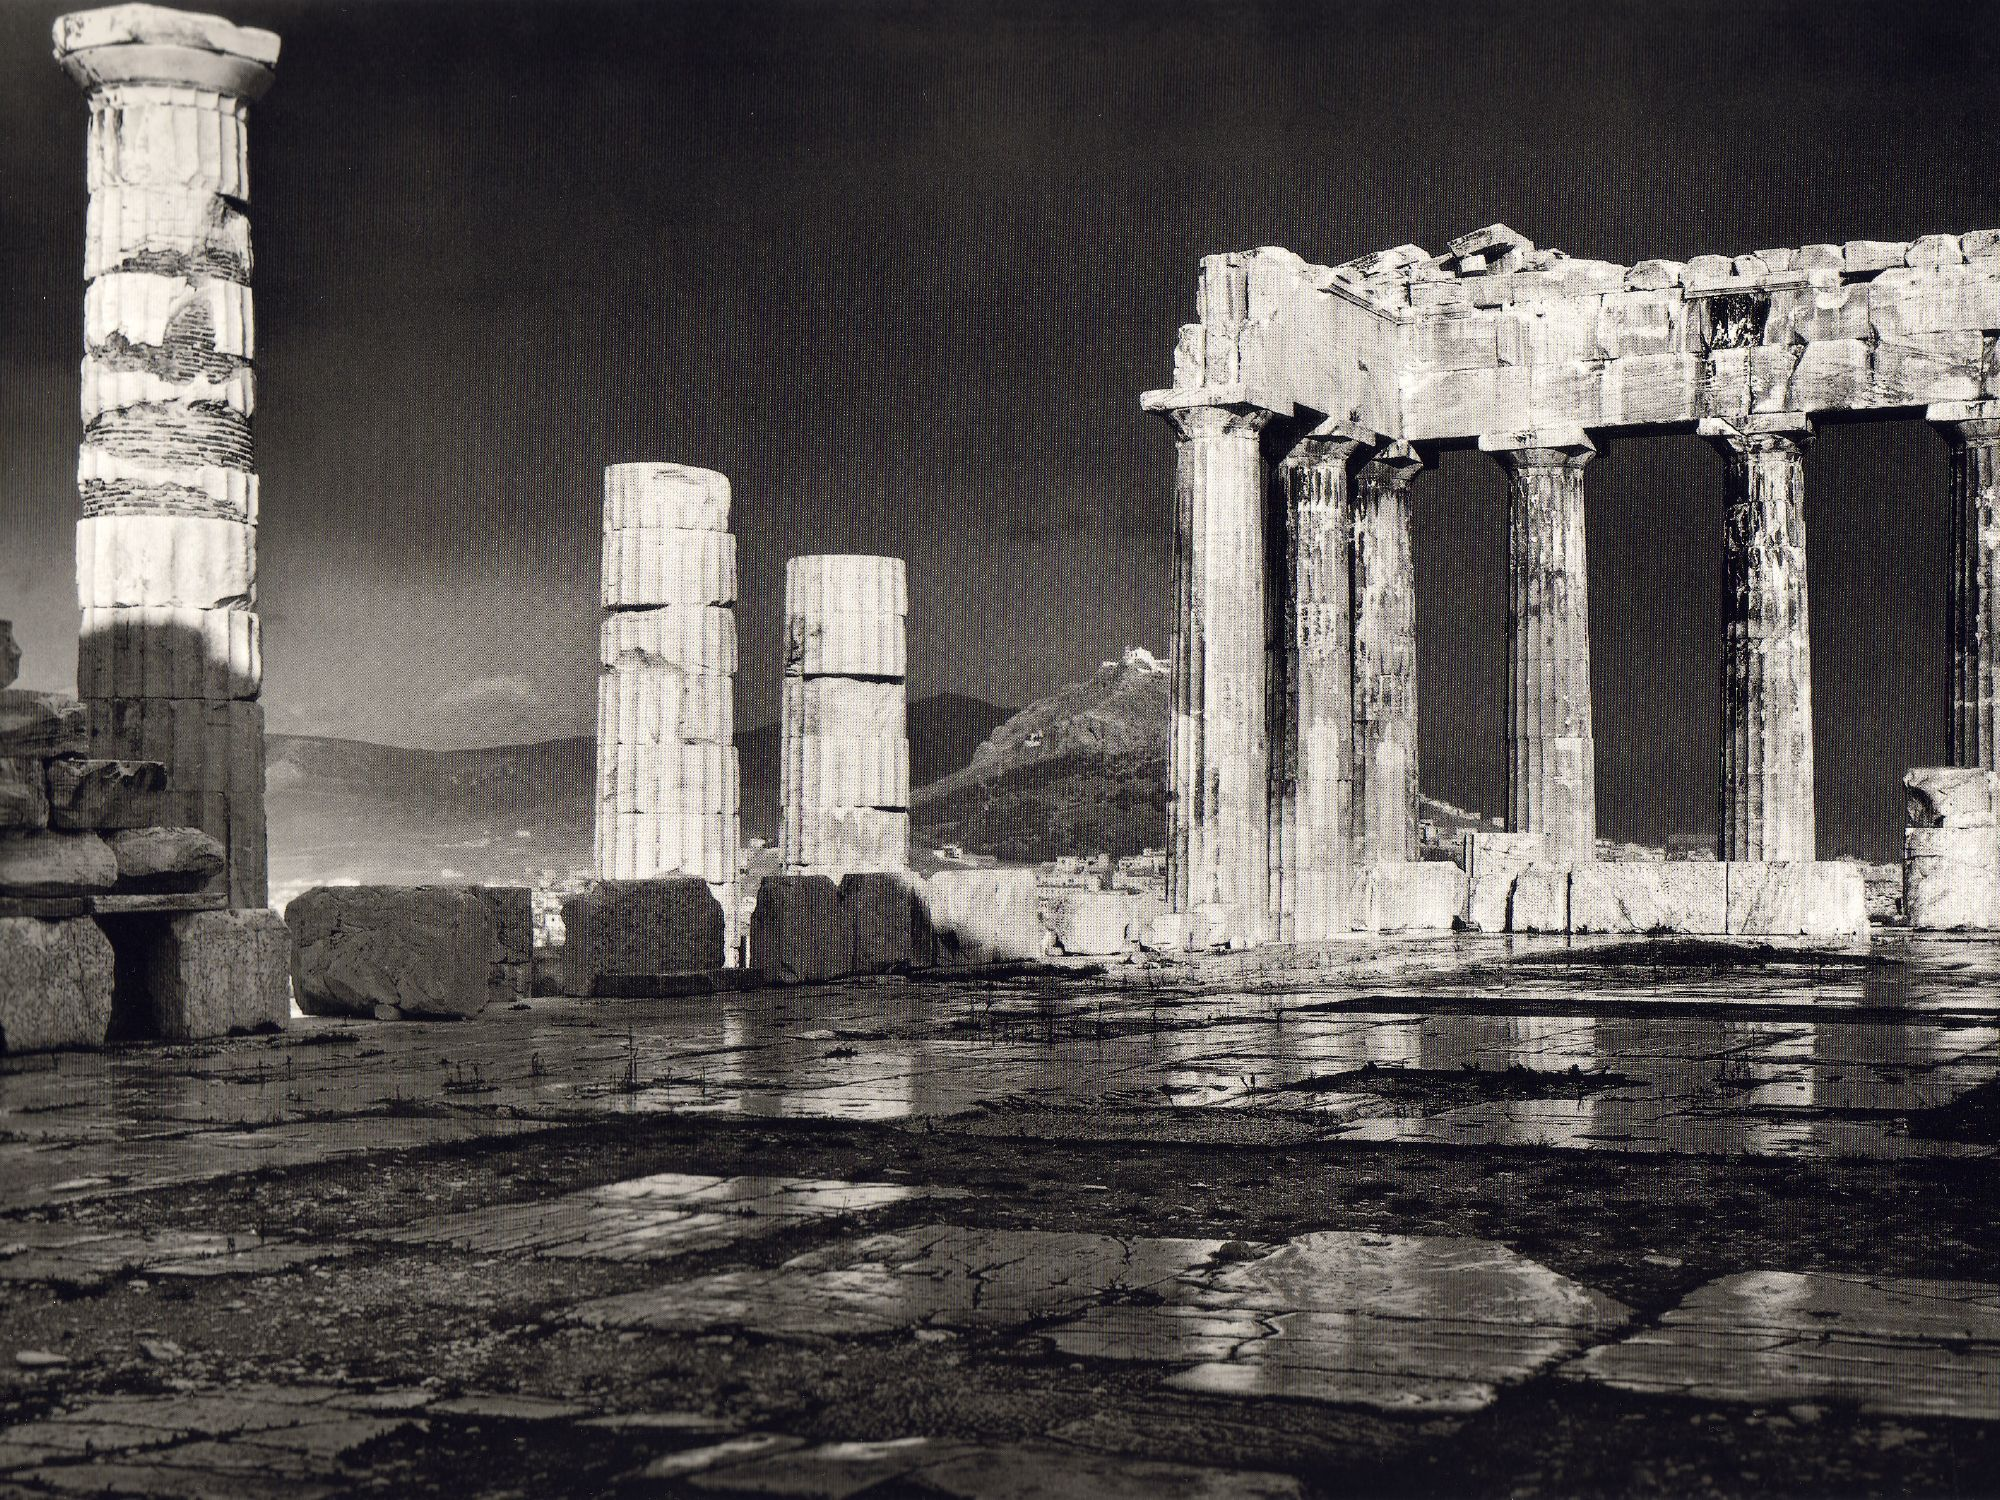 THE PARTHENON IN THE RAIN. FREDERIC BOISSONNAS 1903